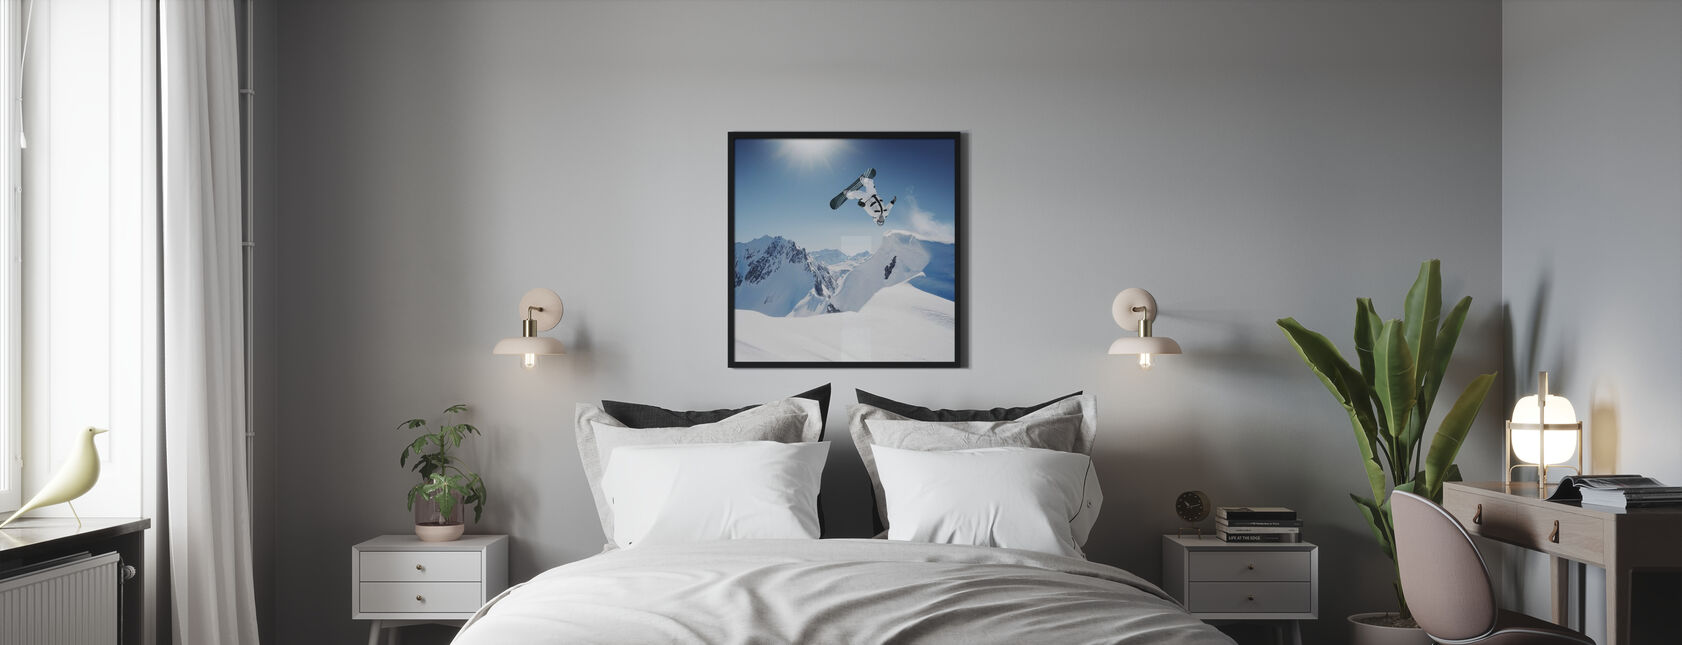 Snowboarder Backflip - Poster - Bedroom